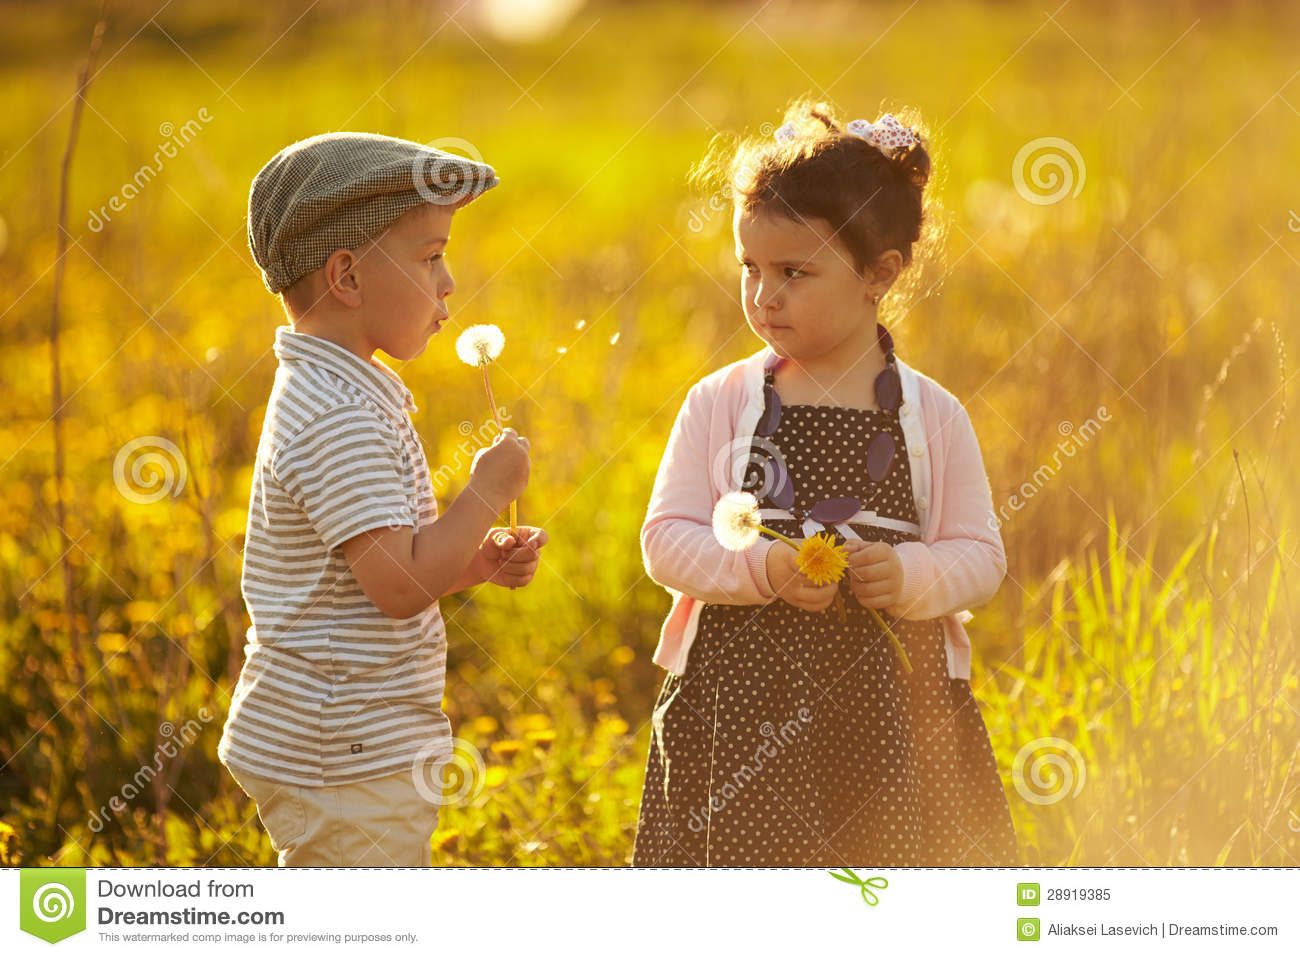 cute boy and girl on summer field stock image - image of friendship